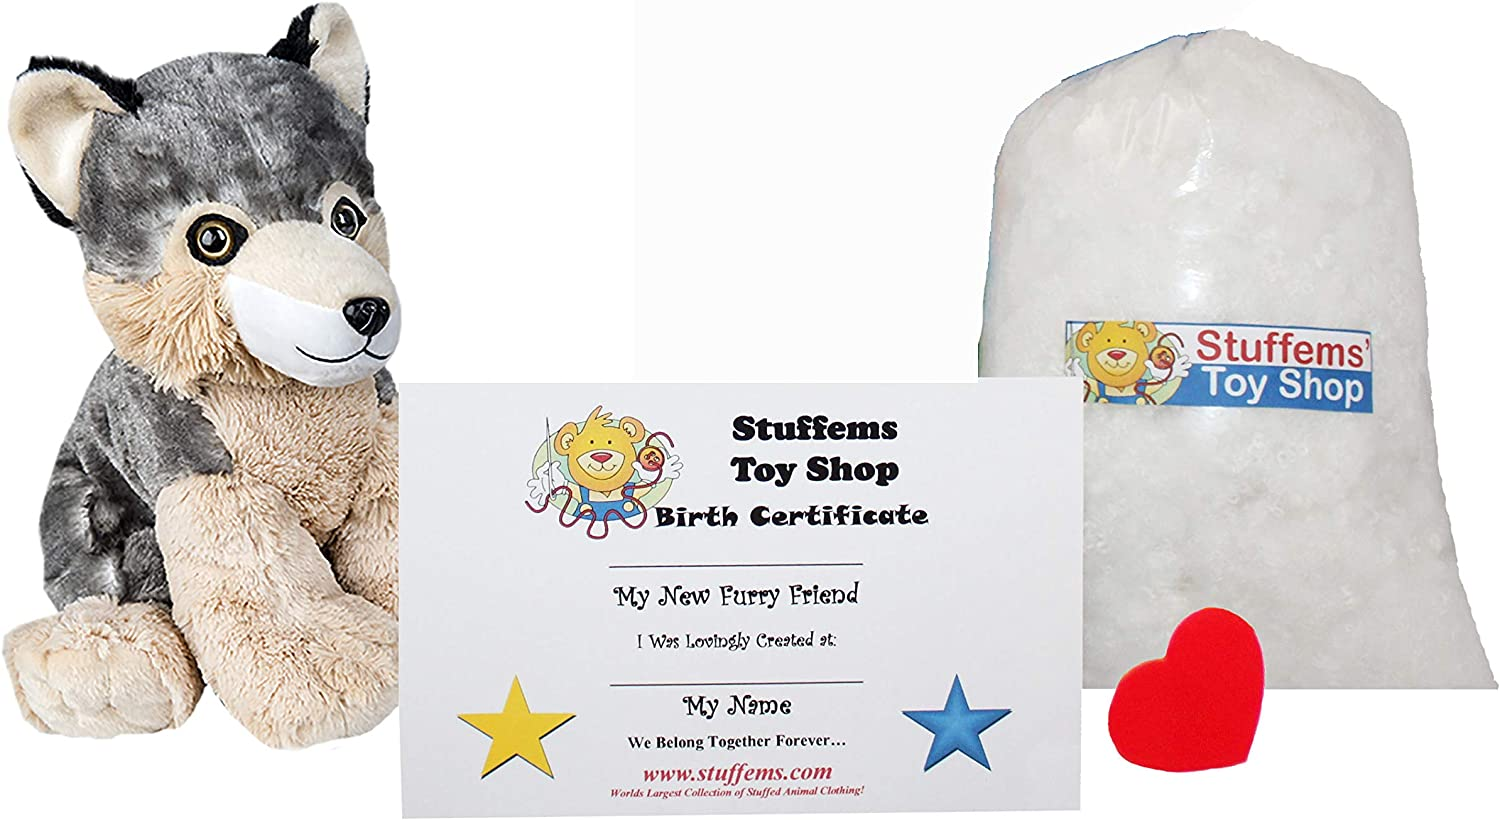 Make Your Own Stuffed Animal Mini 8 Inch Timber The Wolf Kit - No Sewing Required!